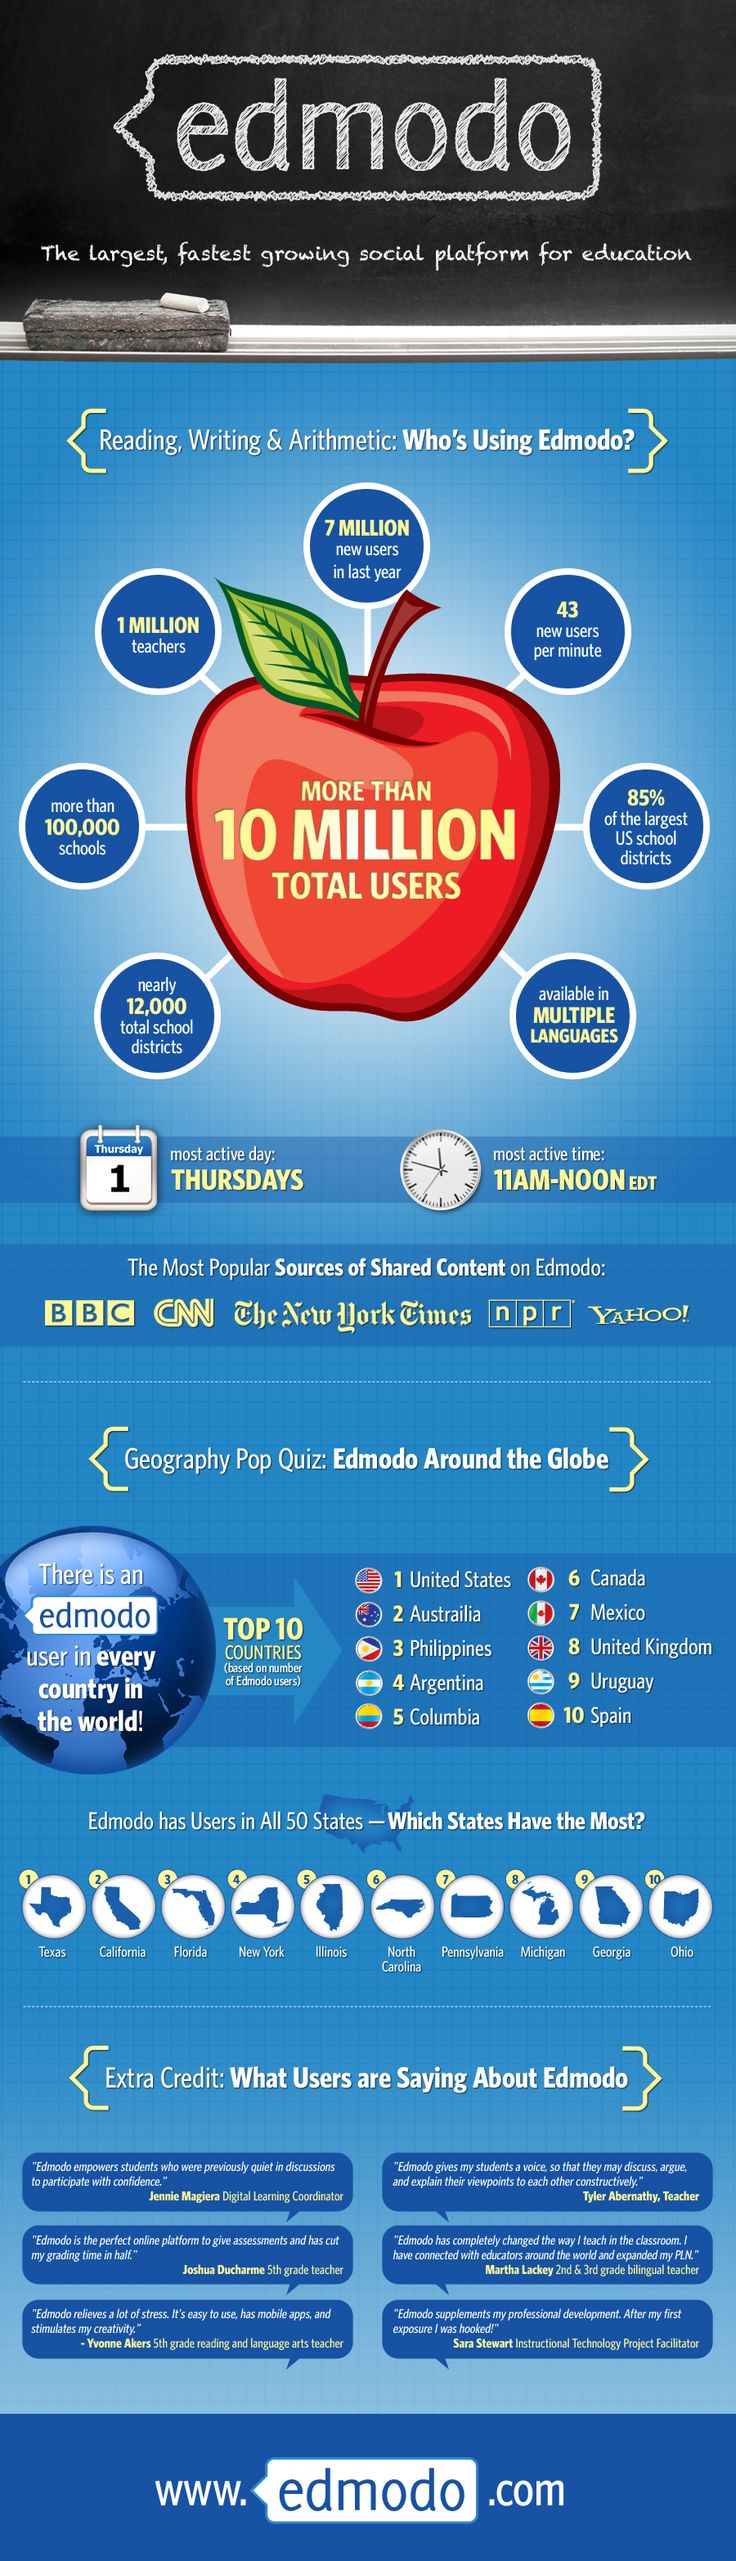 I've been using Edmodo since 2007 with my students and each day the platform gets better and better.